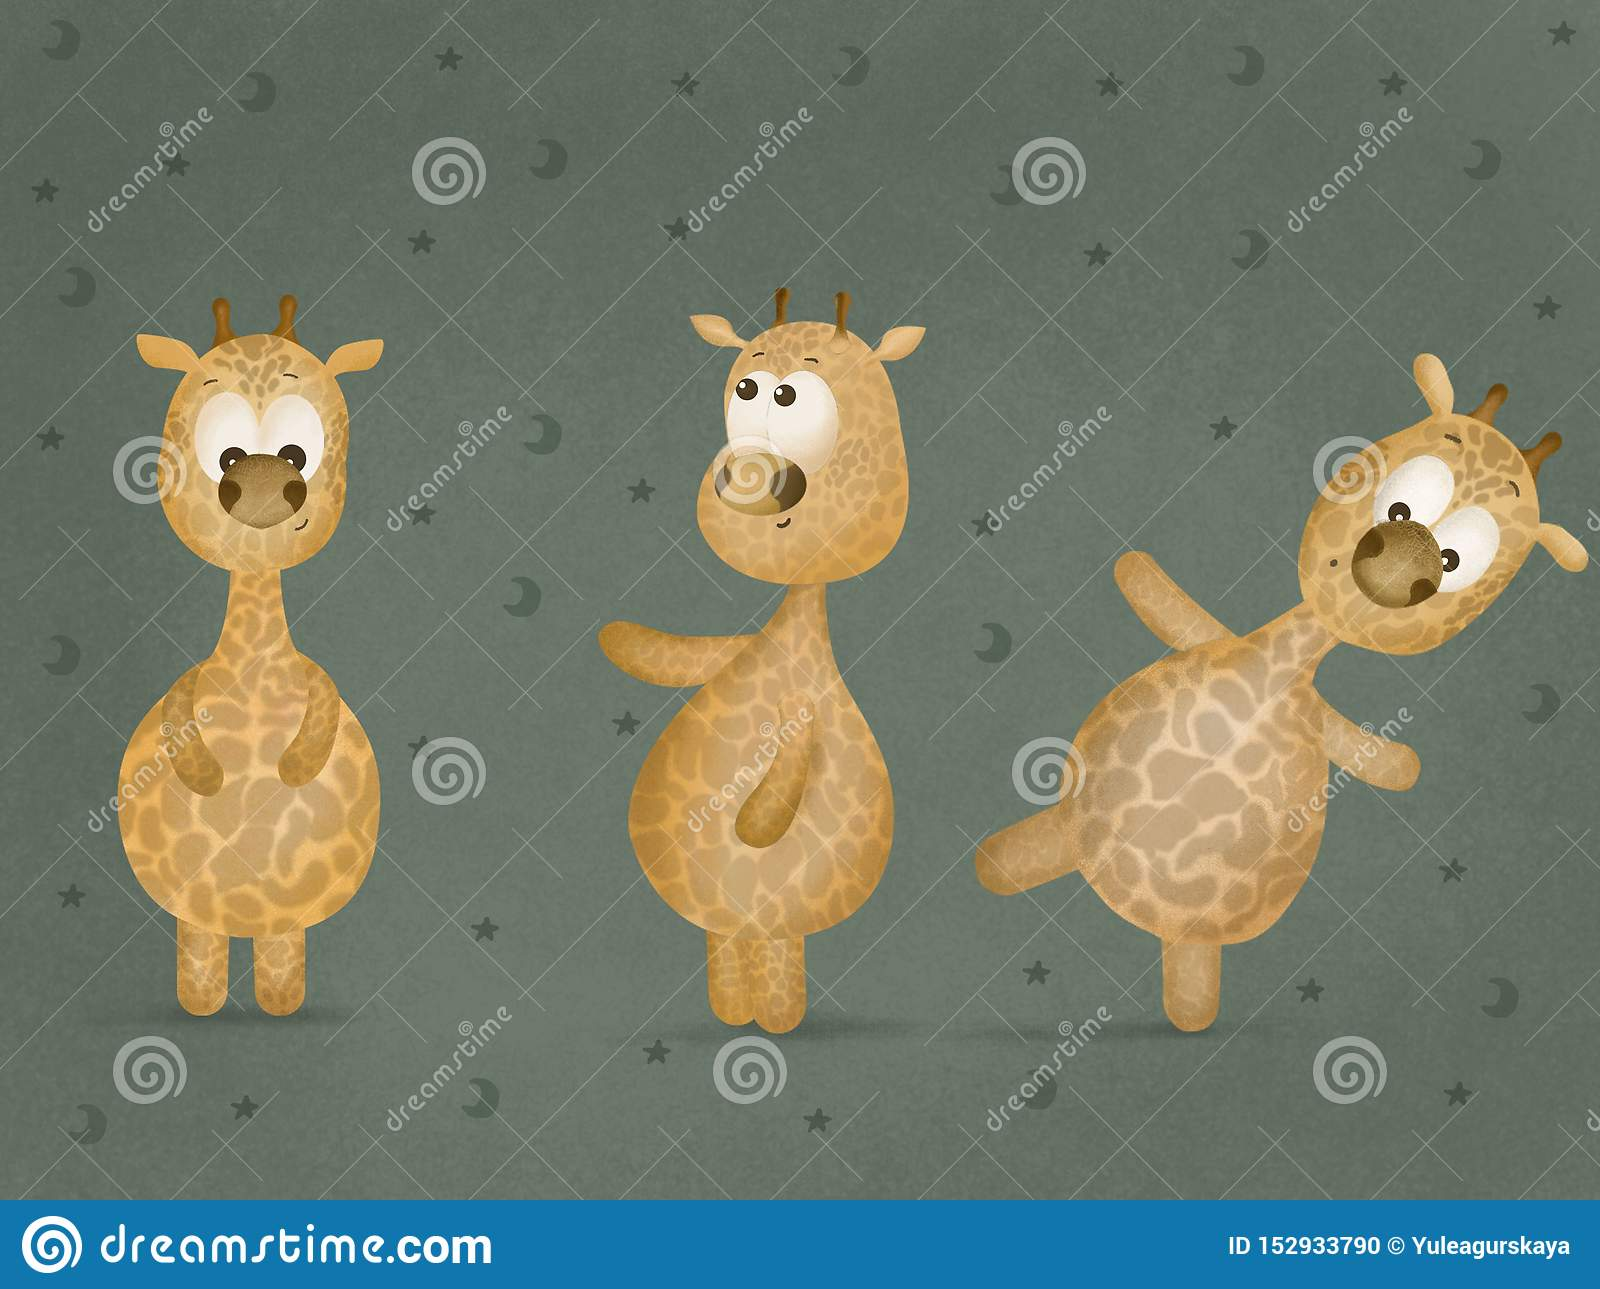 Cute cheerful giraffe. Stencil for children. White object on orange background. Сartoon zoo character. Template for